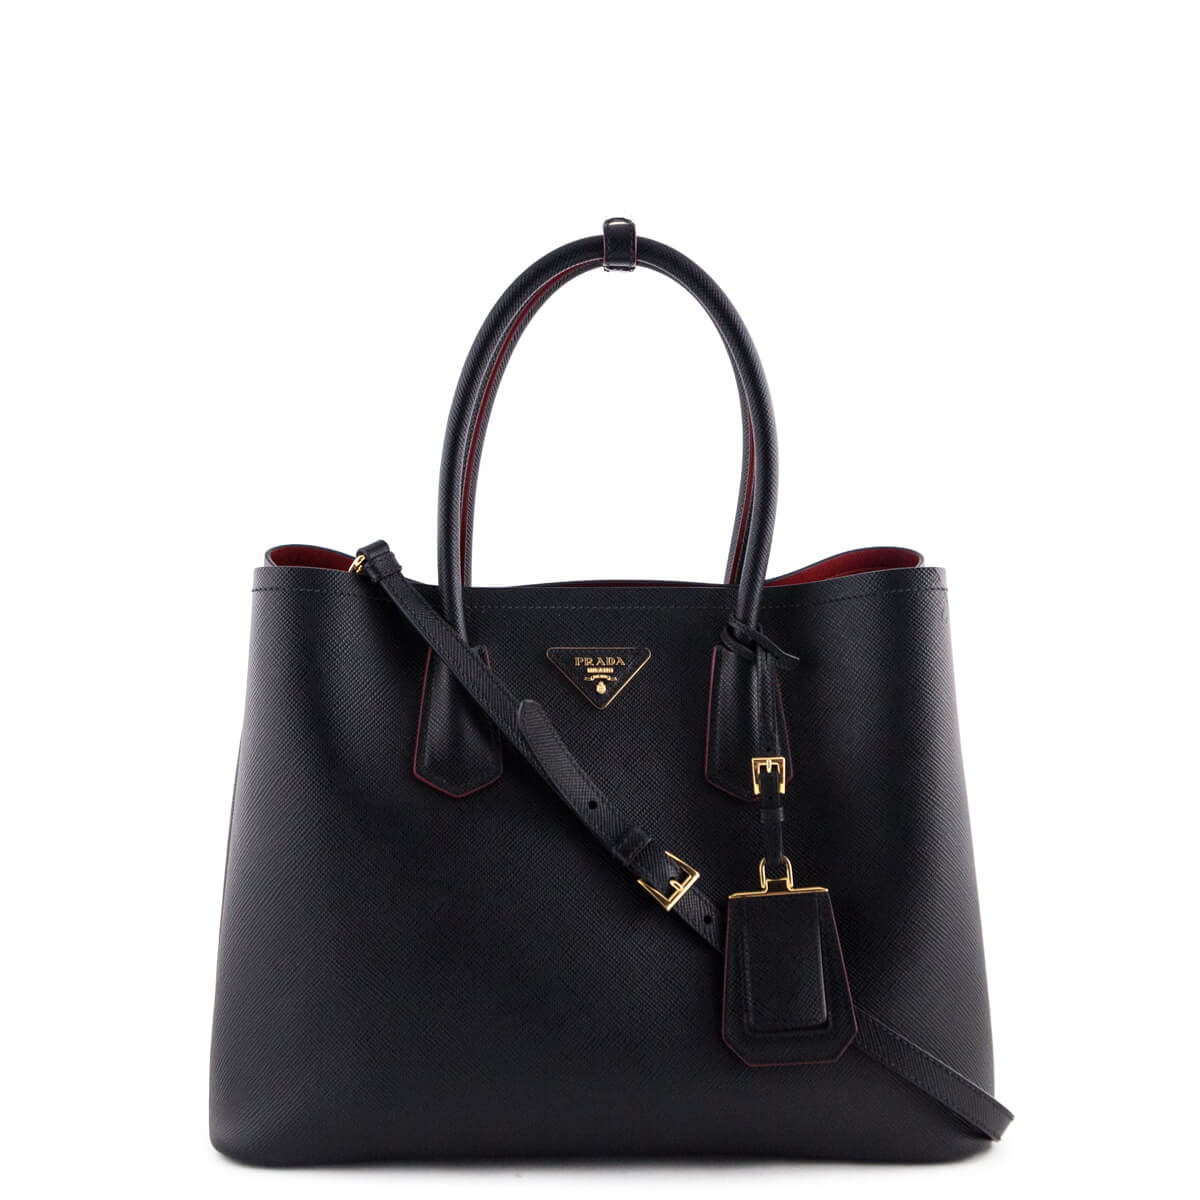 Prada Black Saffiano Double Bag - LOVE that BAG - Preowned Authentic  Designer Handbags ... f1cc770a07